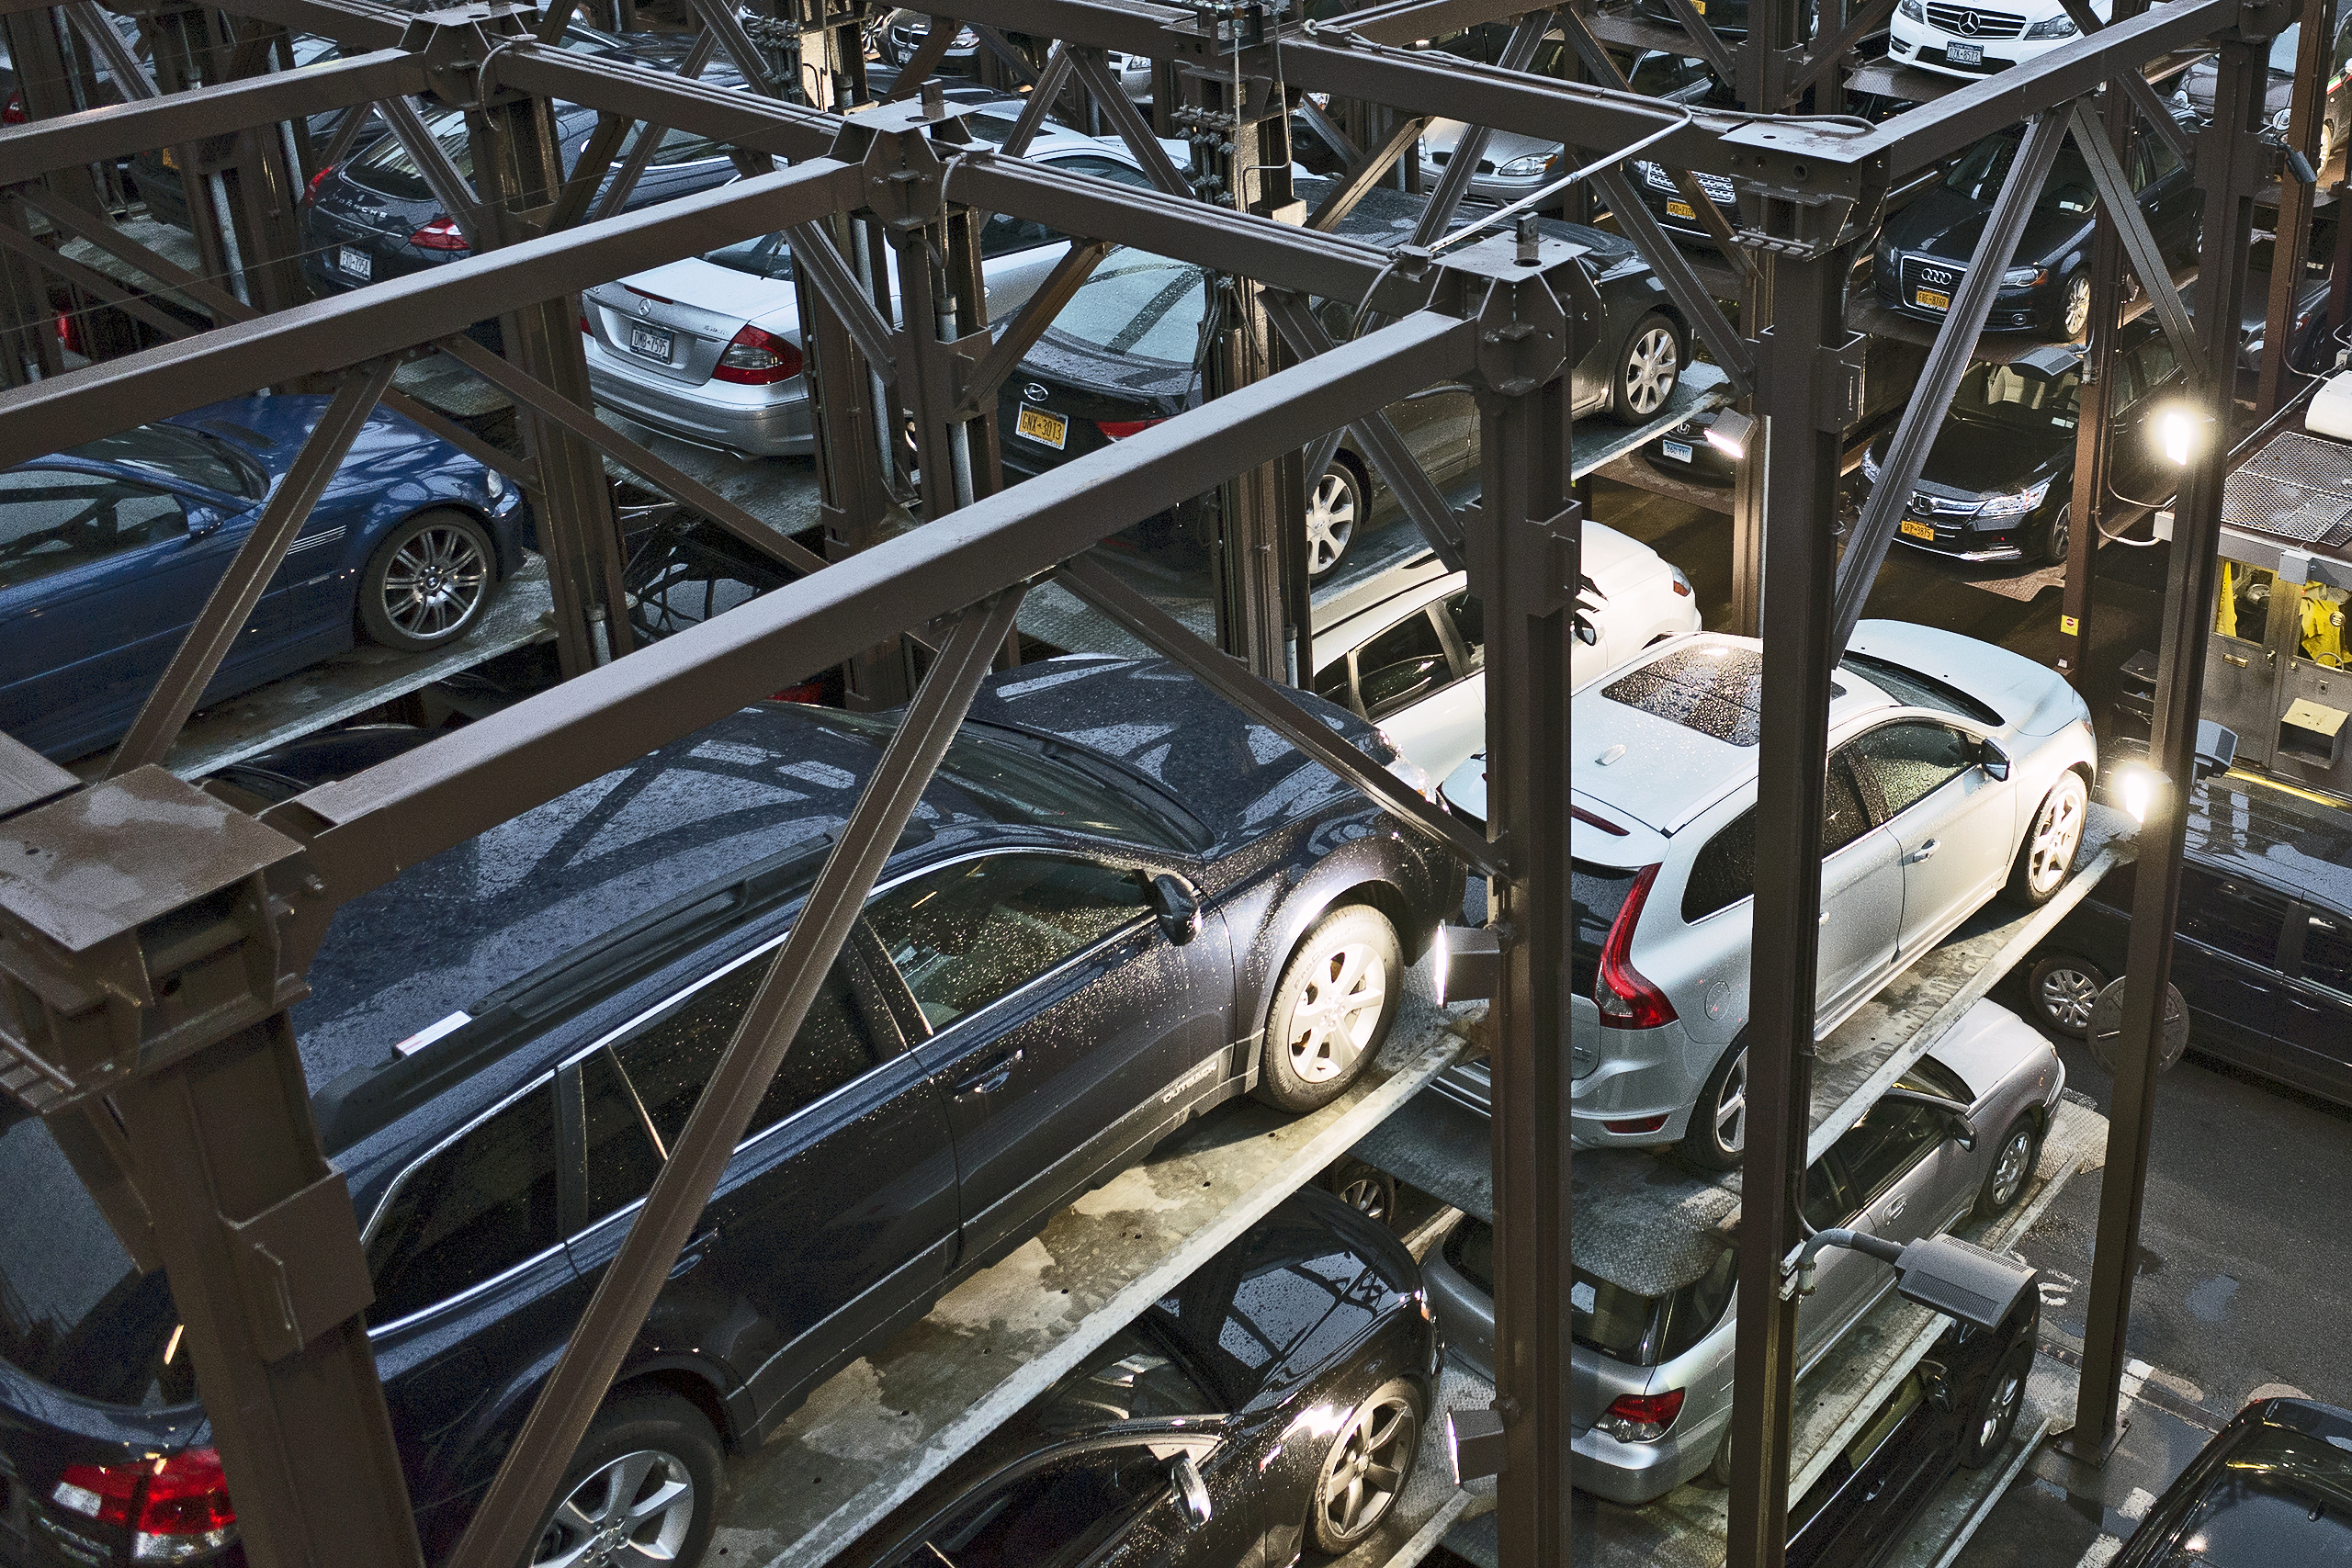 Car storage/parking; New York City, New York